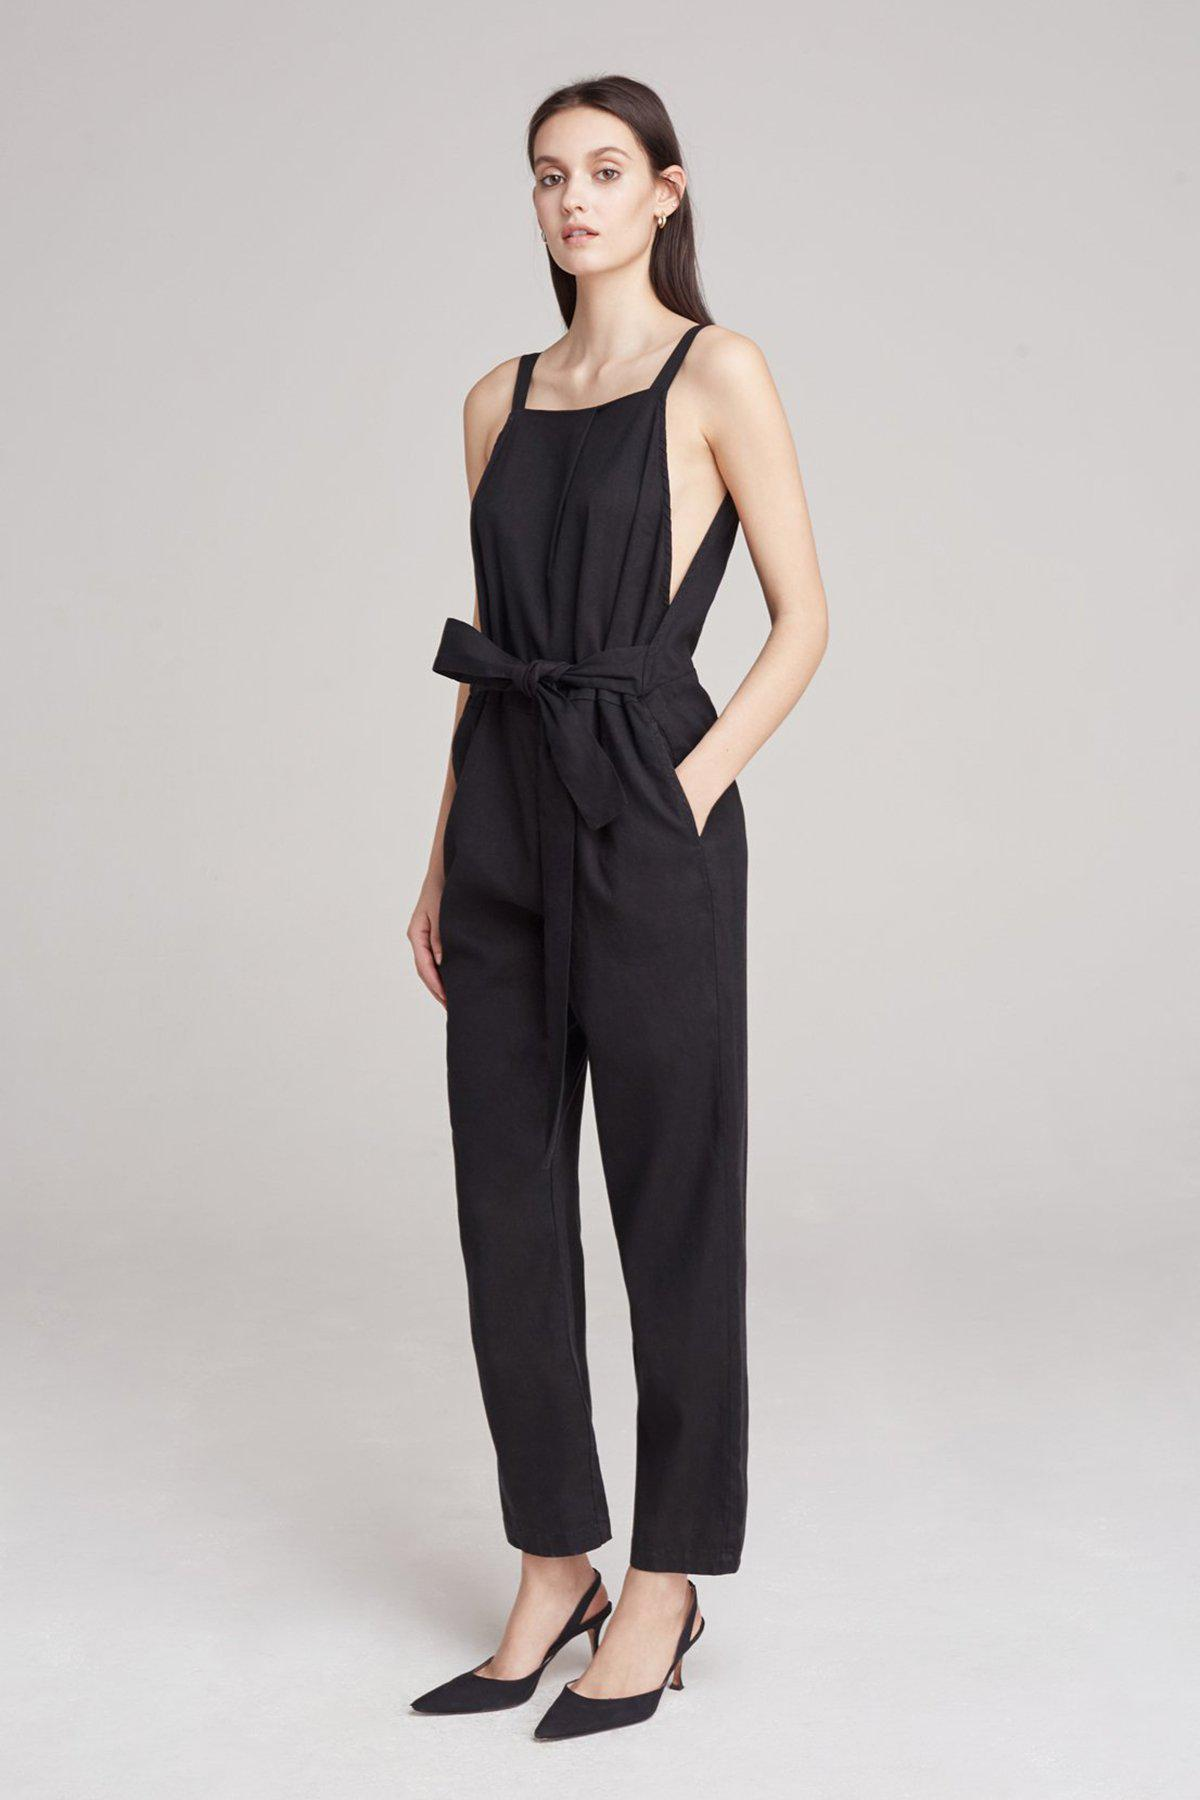 2d73c0b1560 Lyst - 3x1 Antifit Jumpsuit